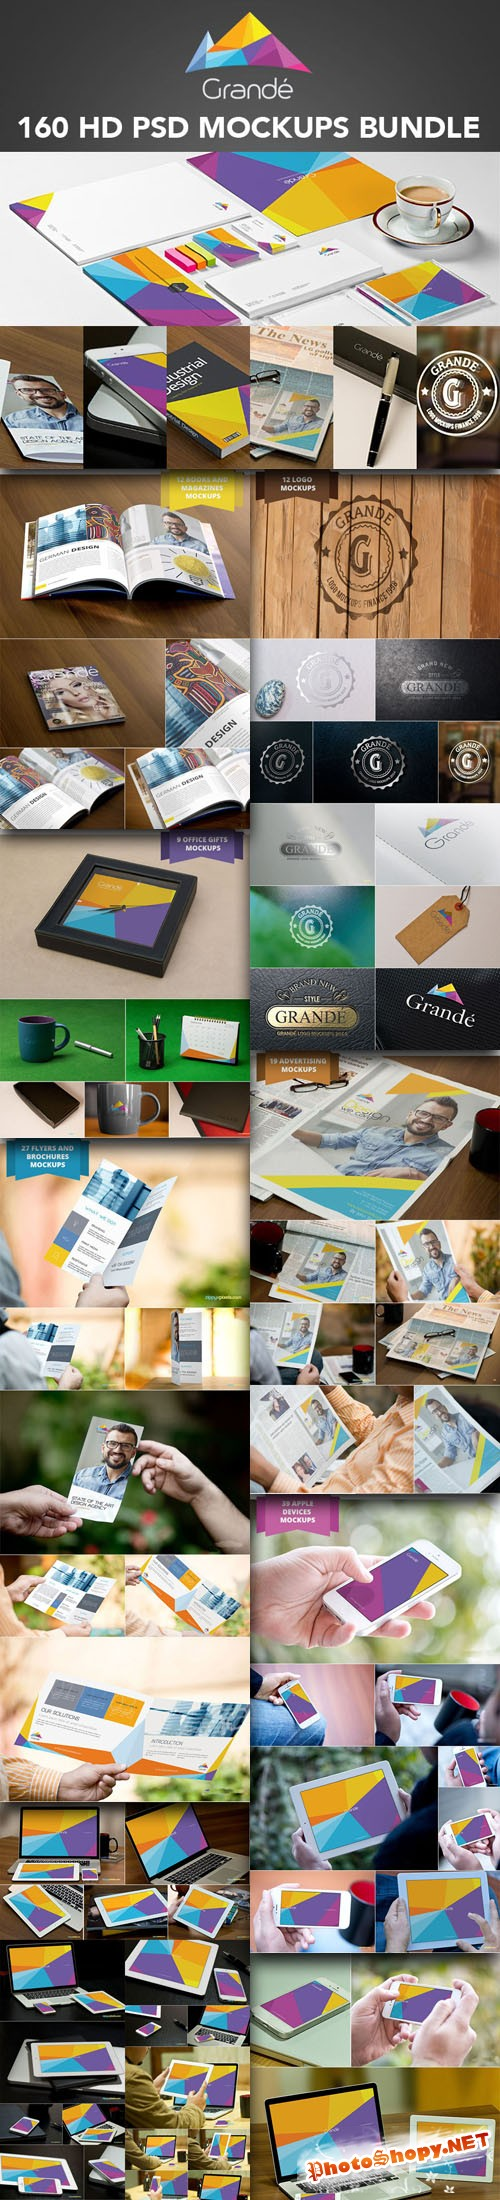 160 High Quality Professional PSD Mockups Bundle from ZippyPixels